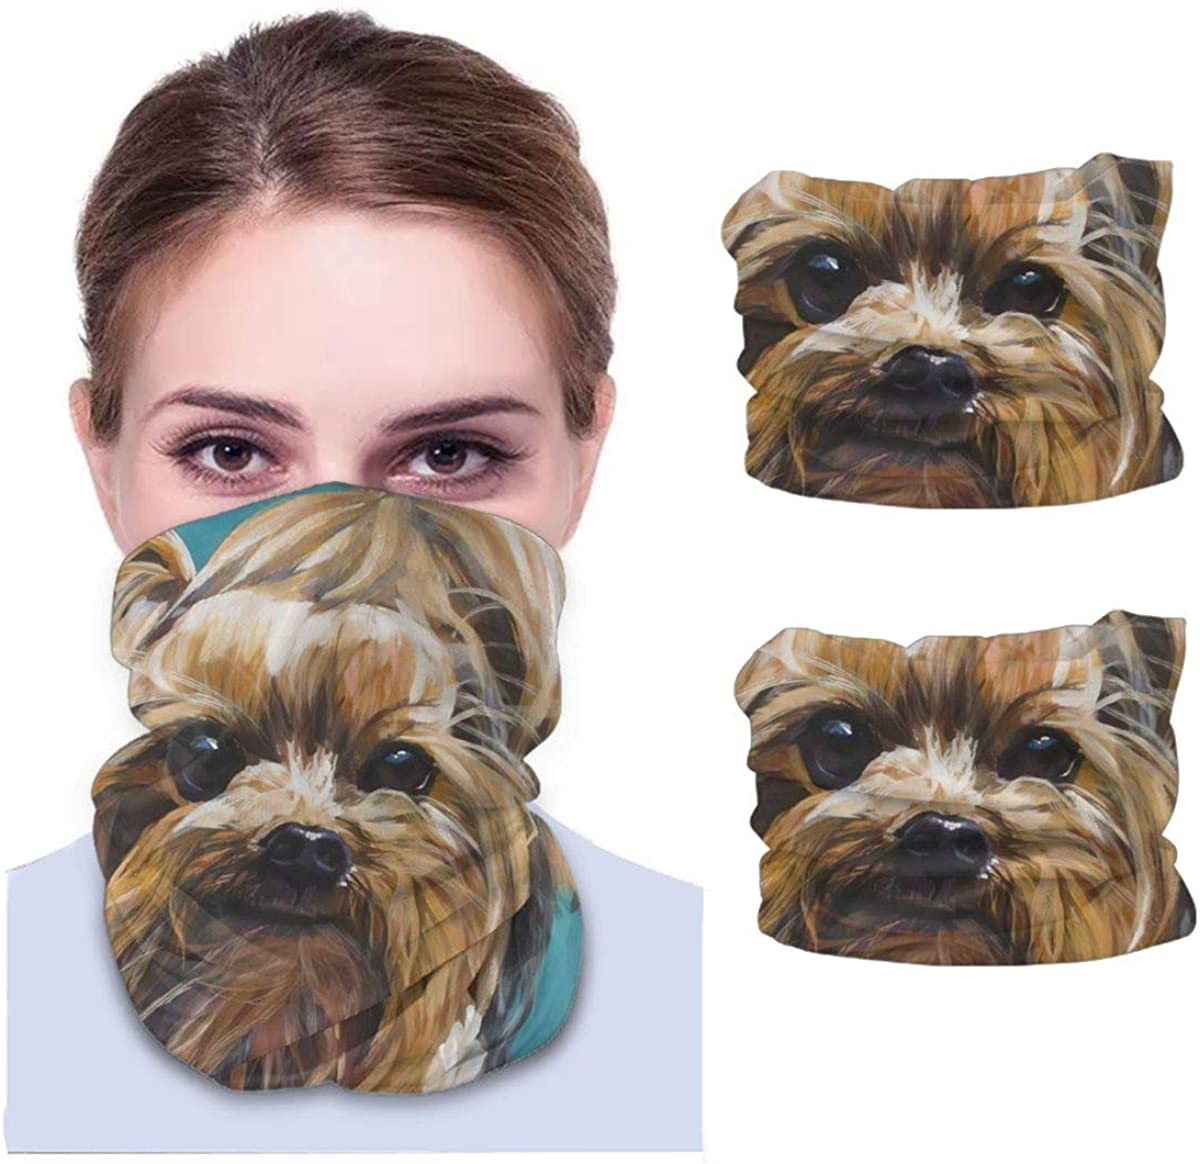 Art Yorkshire Terrier Teacup Dog Cute Unisex Adult Face Mask 2 Pack Neck Gaiter Reusable Washable Windproof Mask Sports Outdoors Half Balaclava Ski Mask Bandana Women Men Gifts